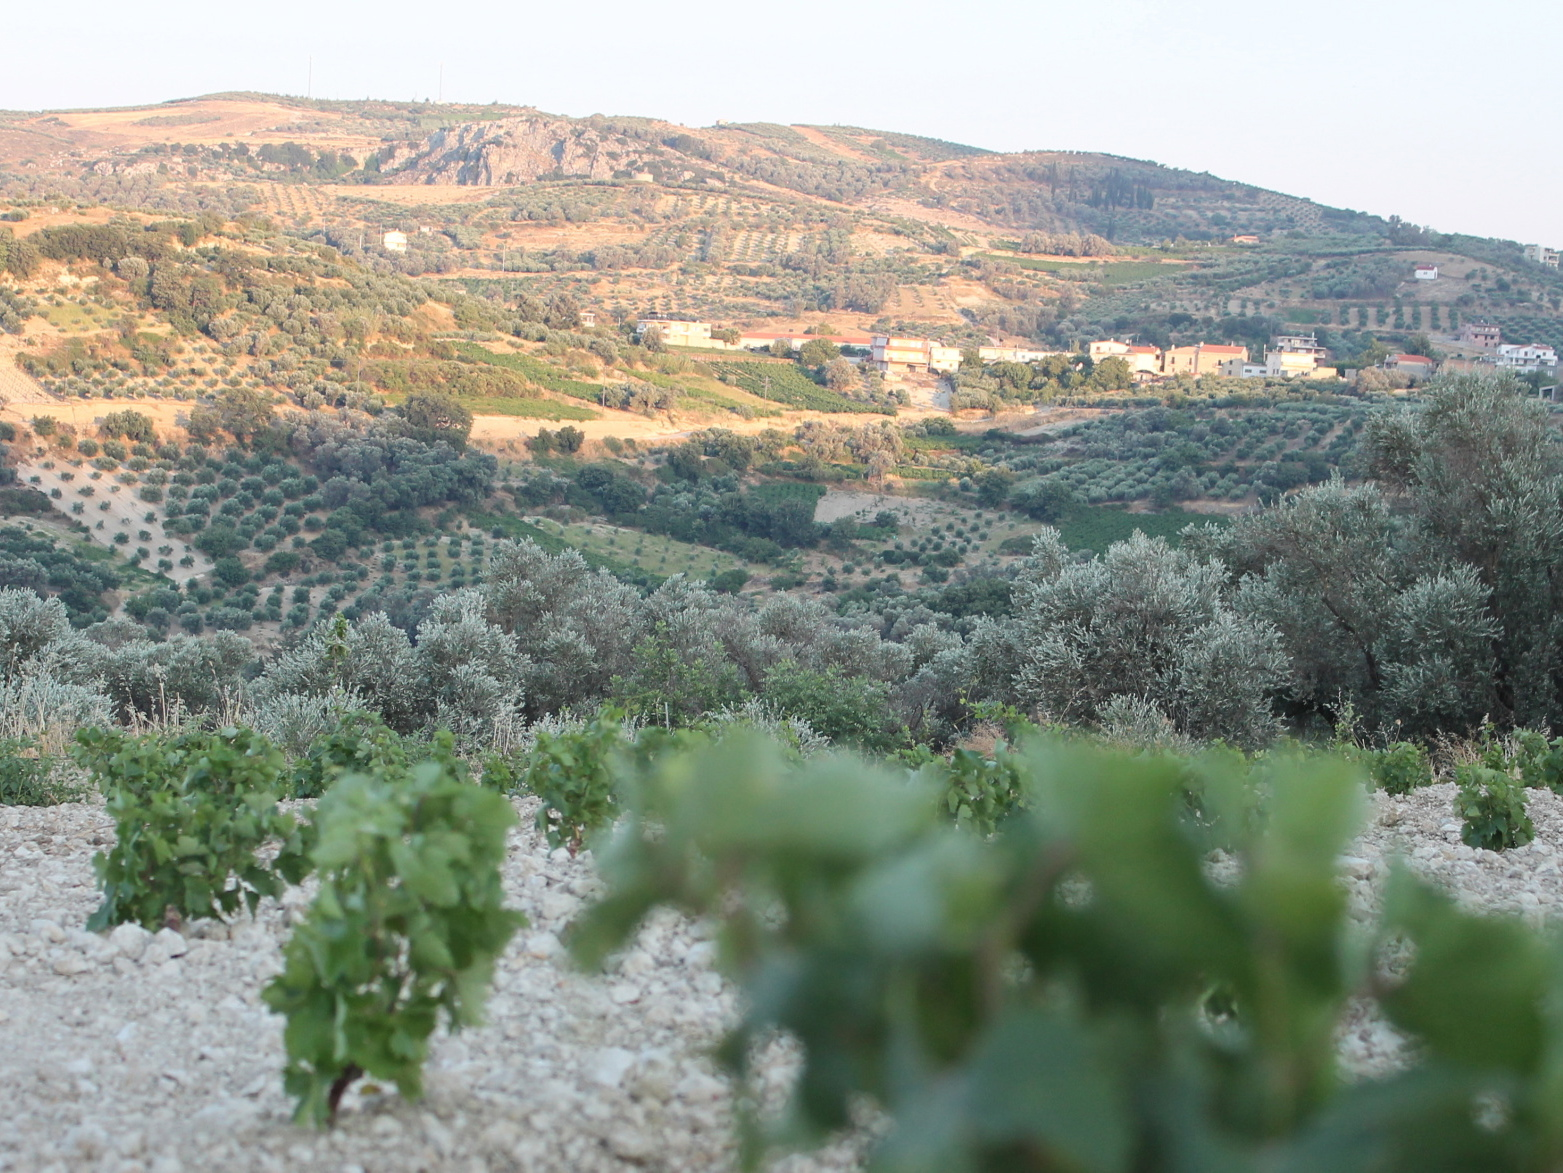 Olive trees among the vines in Crete